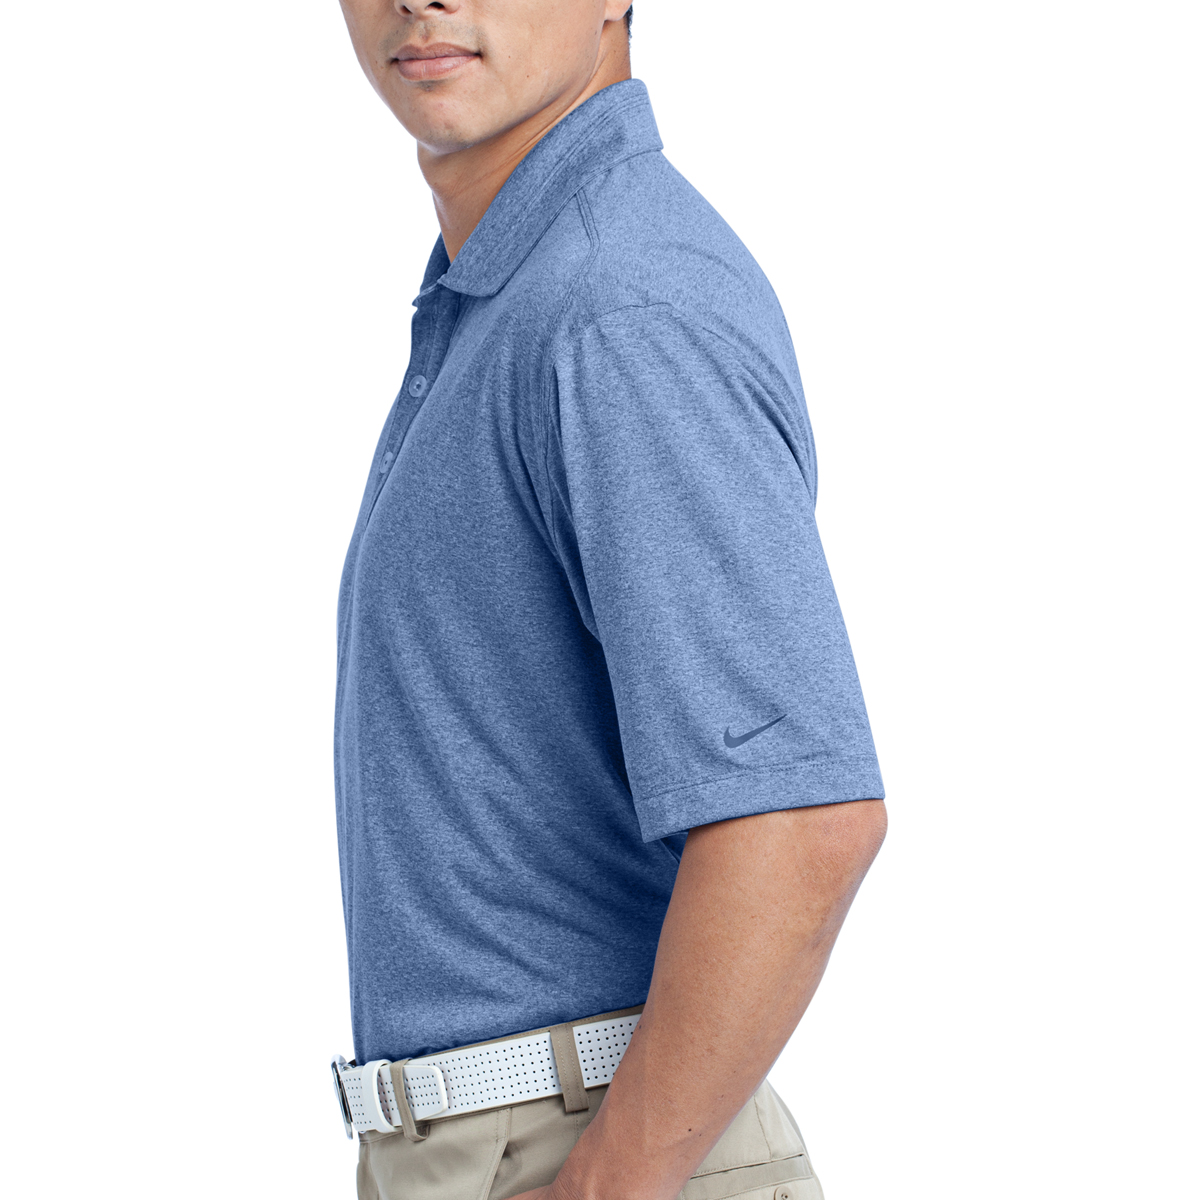 6ca5dcf8 474231 Nike Dri-FIT Heather Polo - Hit Promotional Products